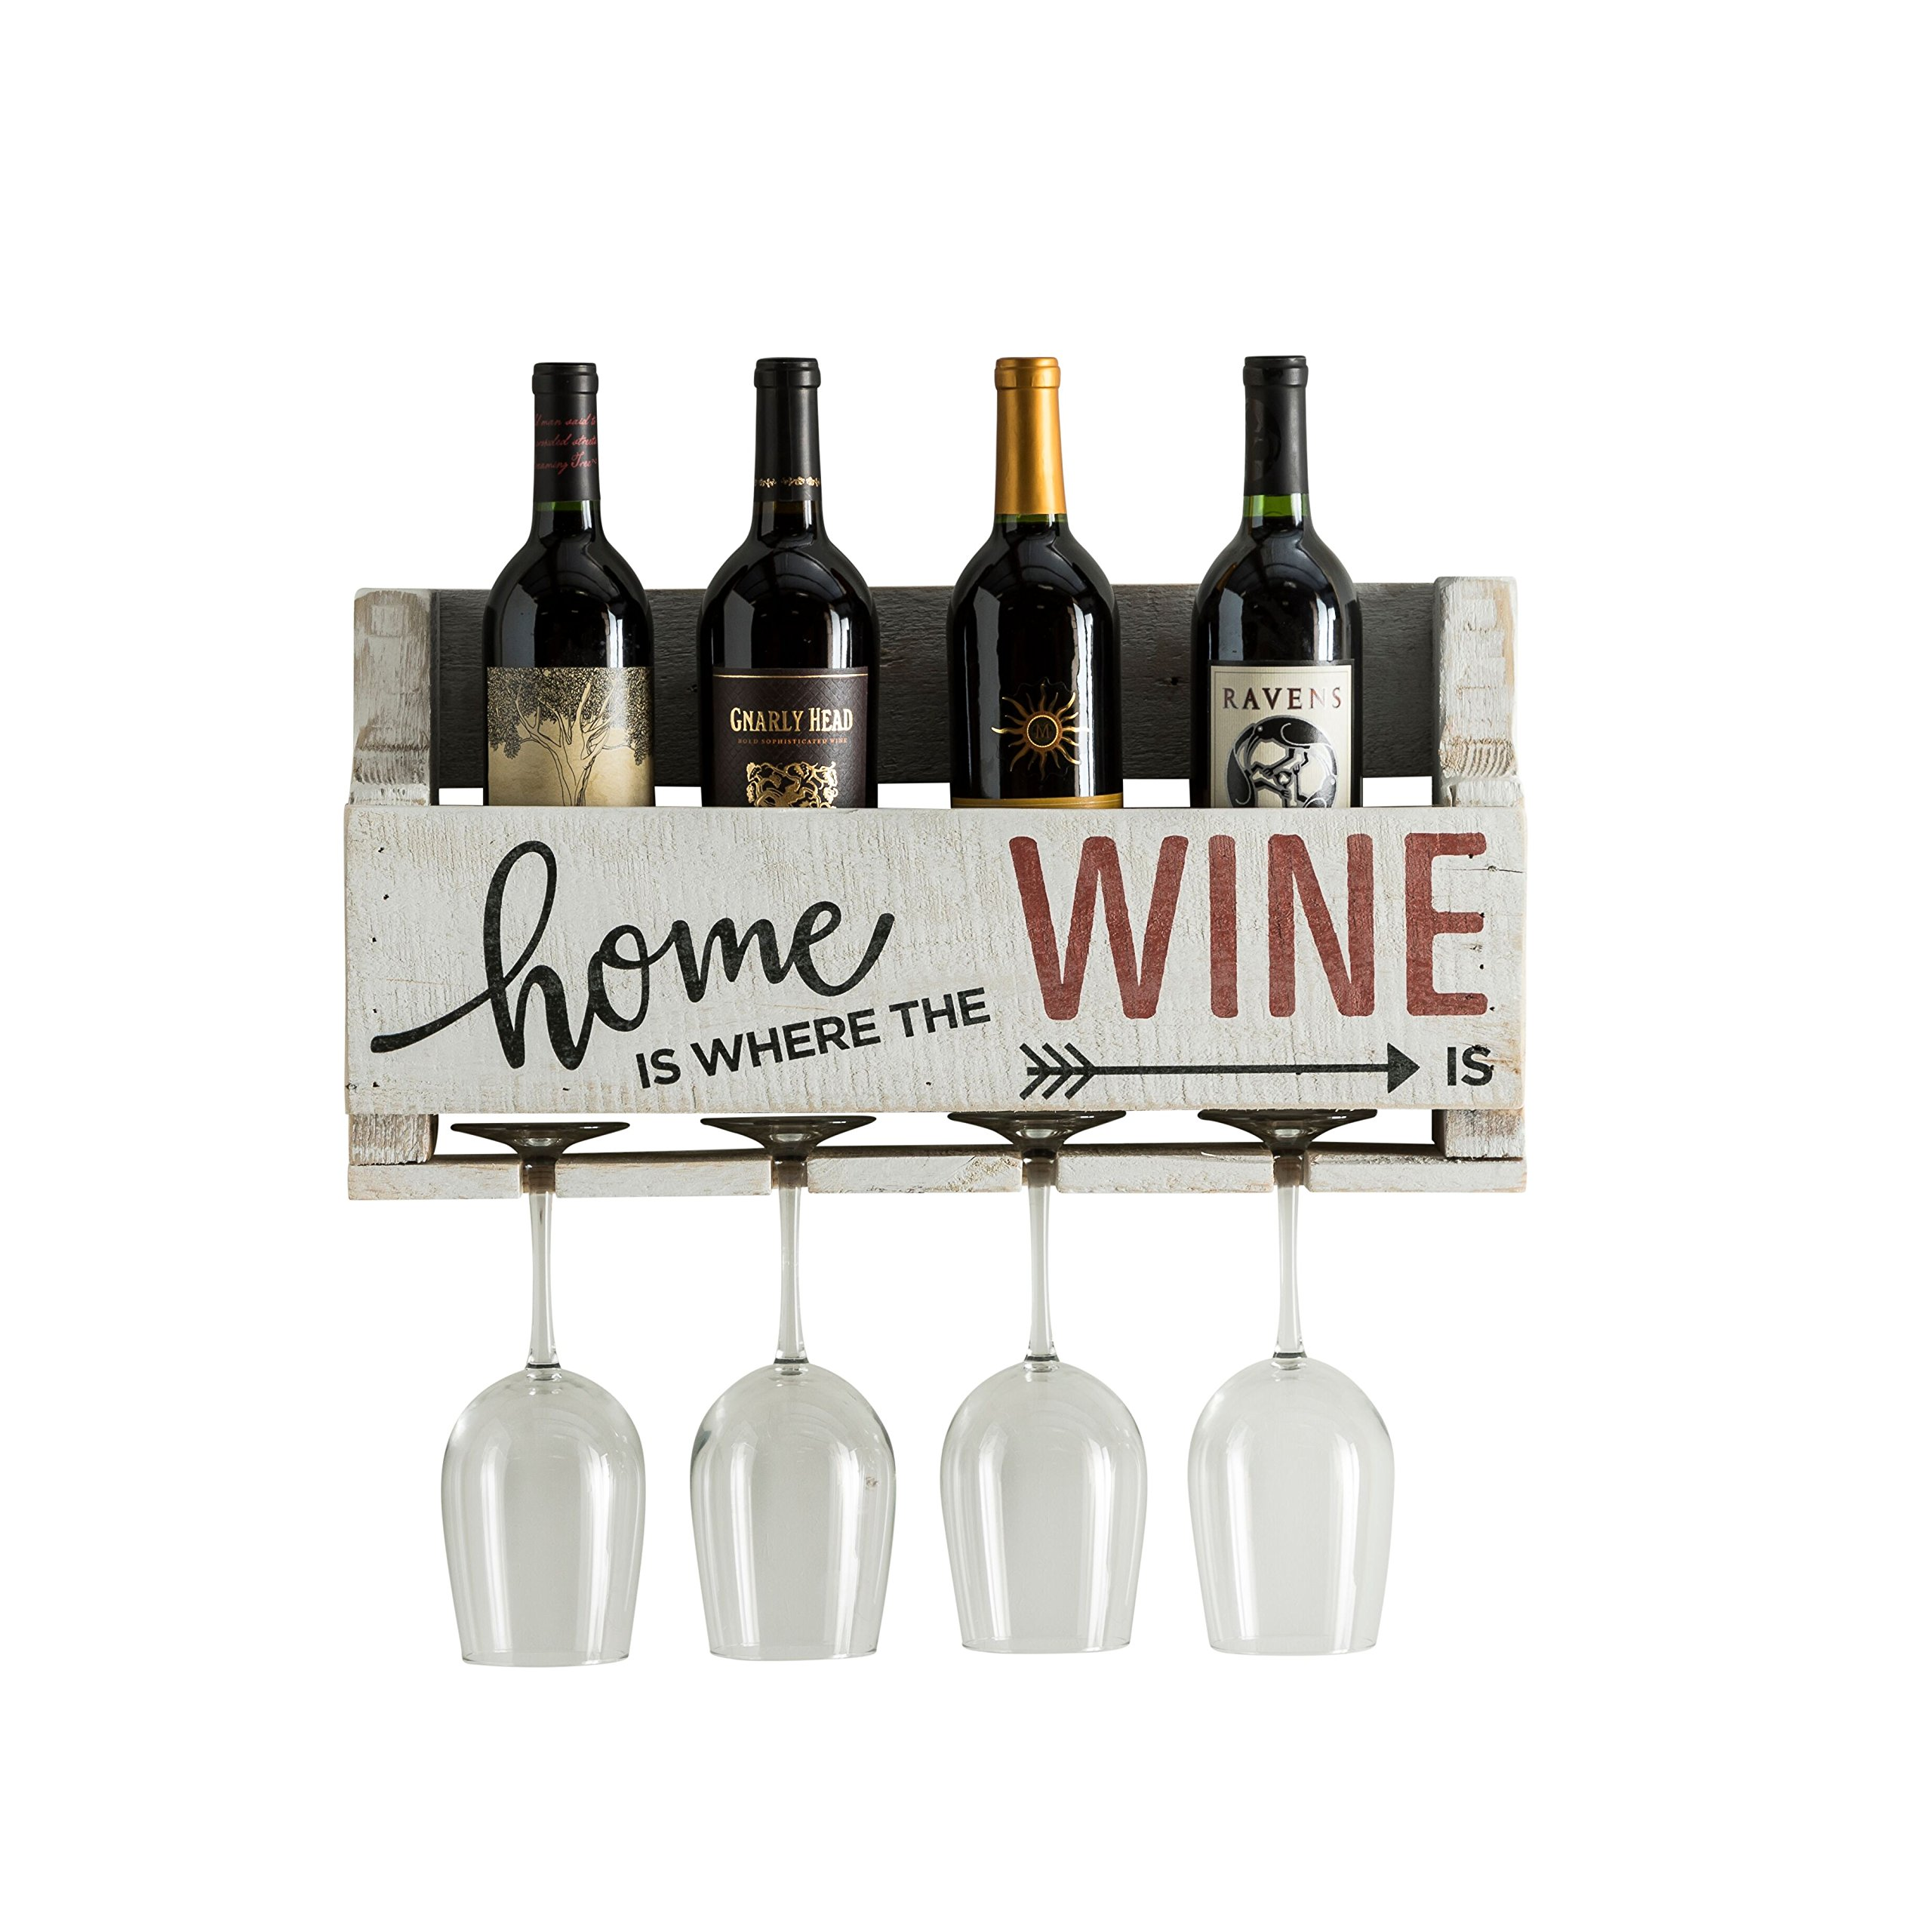 The Little Elm Wine Rack w/Quote 'Home is Where the Wine is', del Hutson Designs - USA Handmade Reclaimed Wood, Wall Mounted, 4 Bottle 4 Long Stem Glass Holder (White)